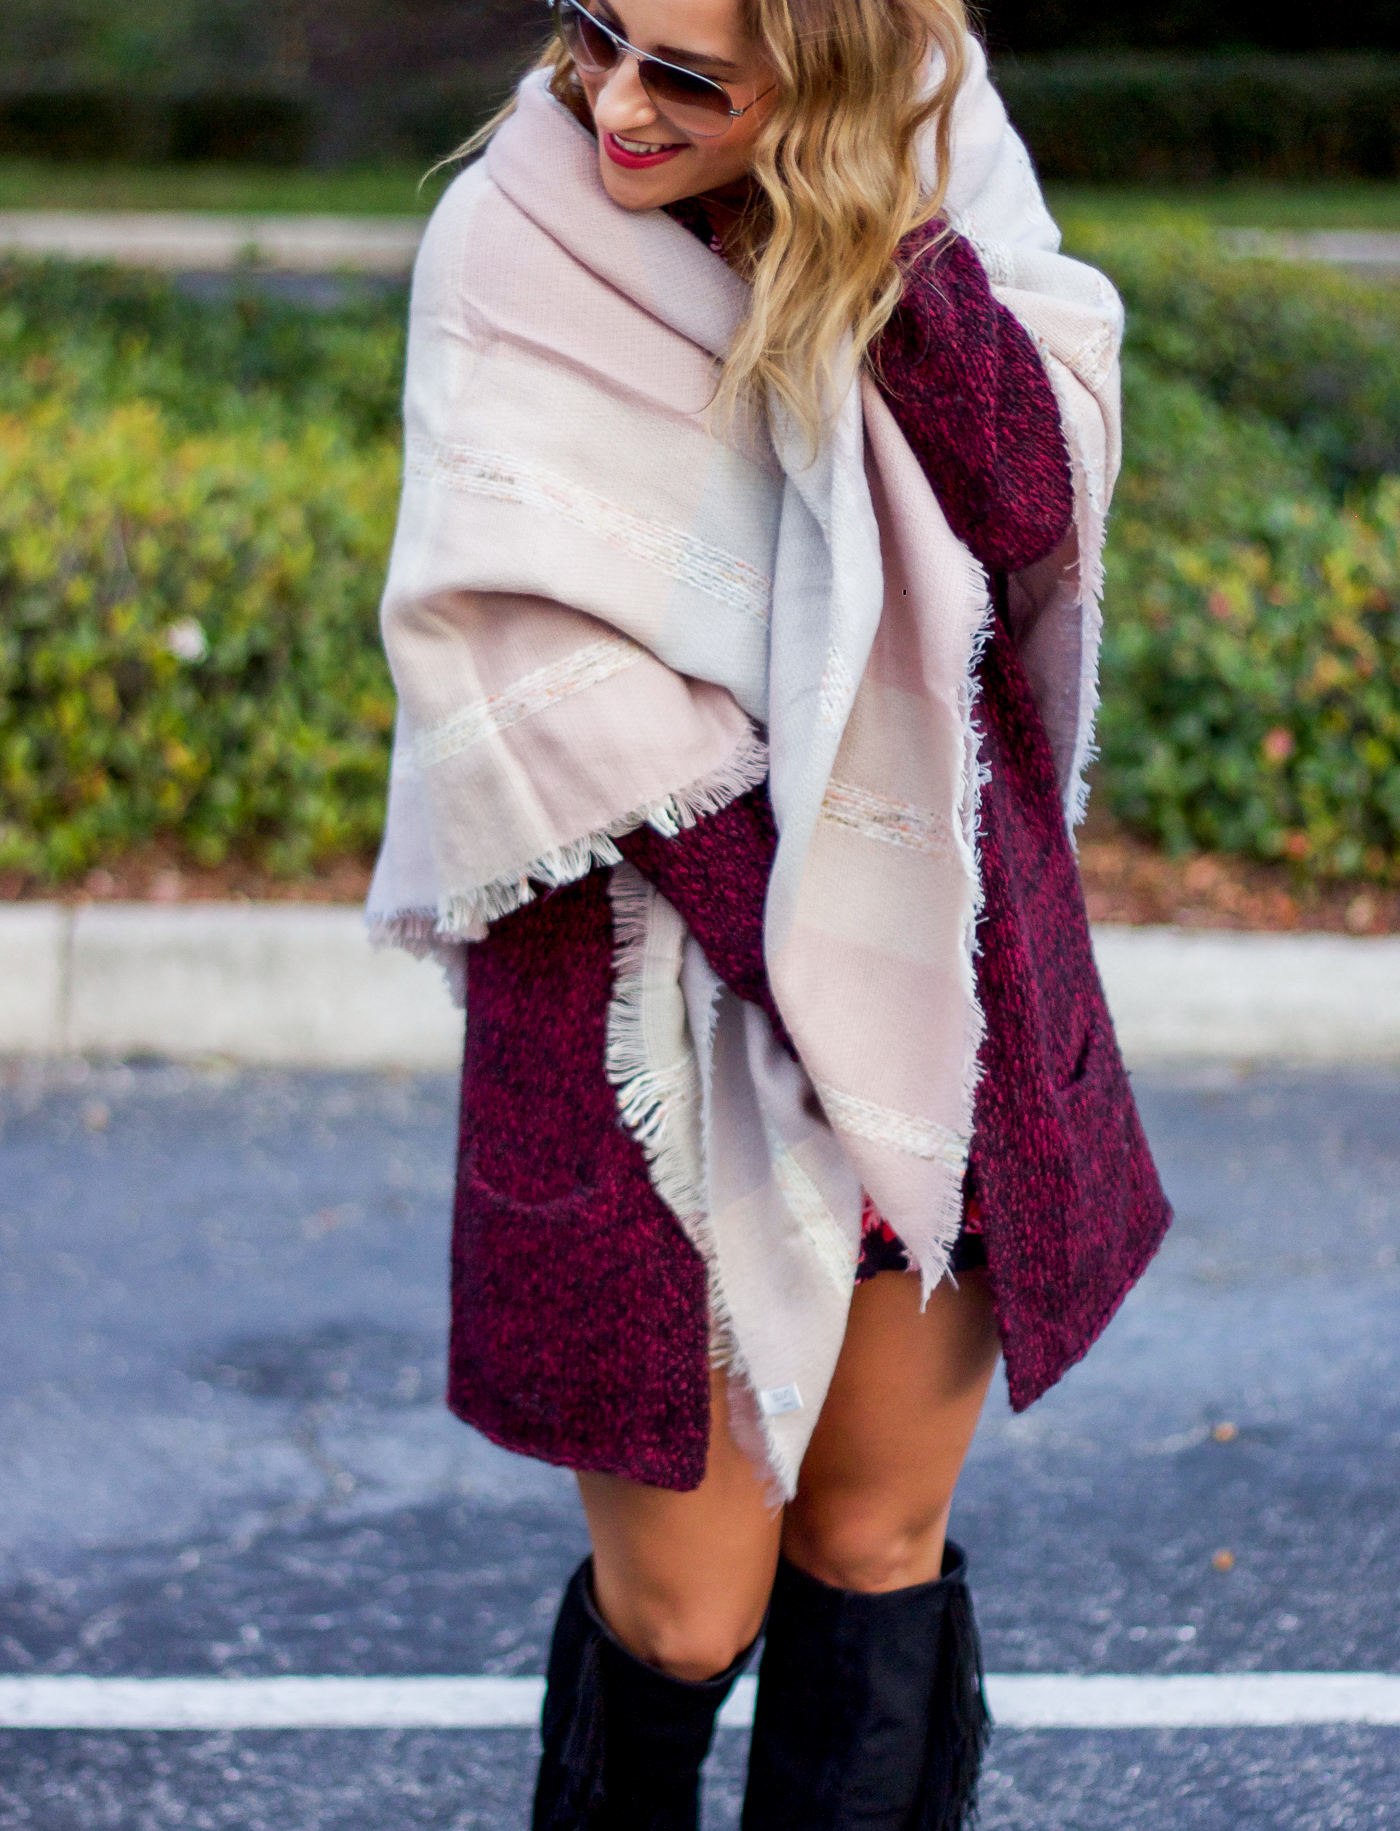 How to wear a blanket scarf for winter in Florida